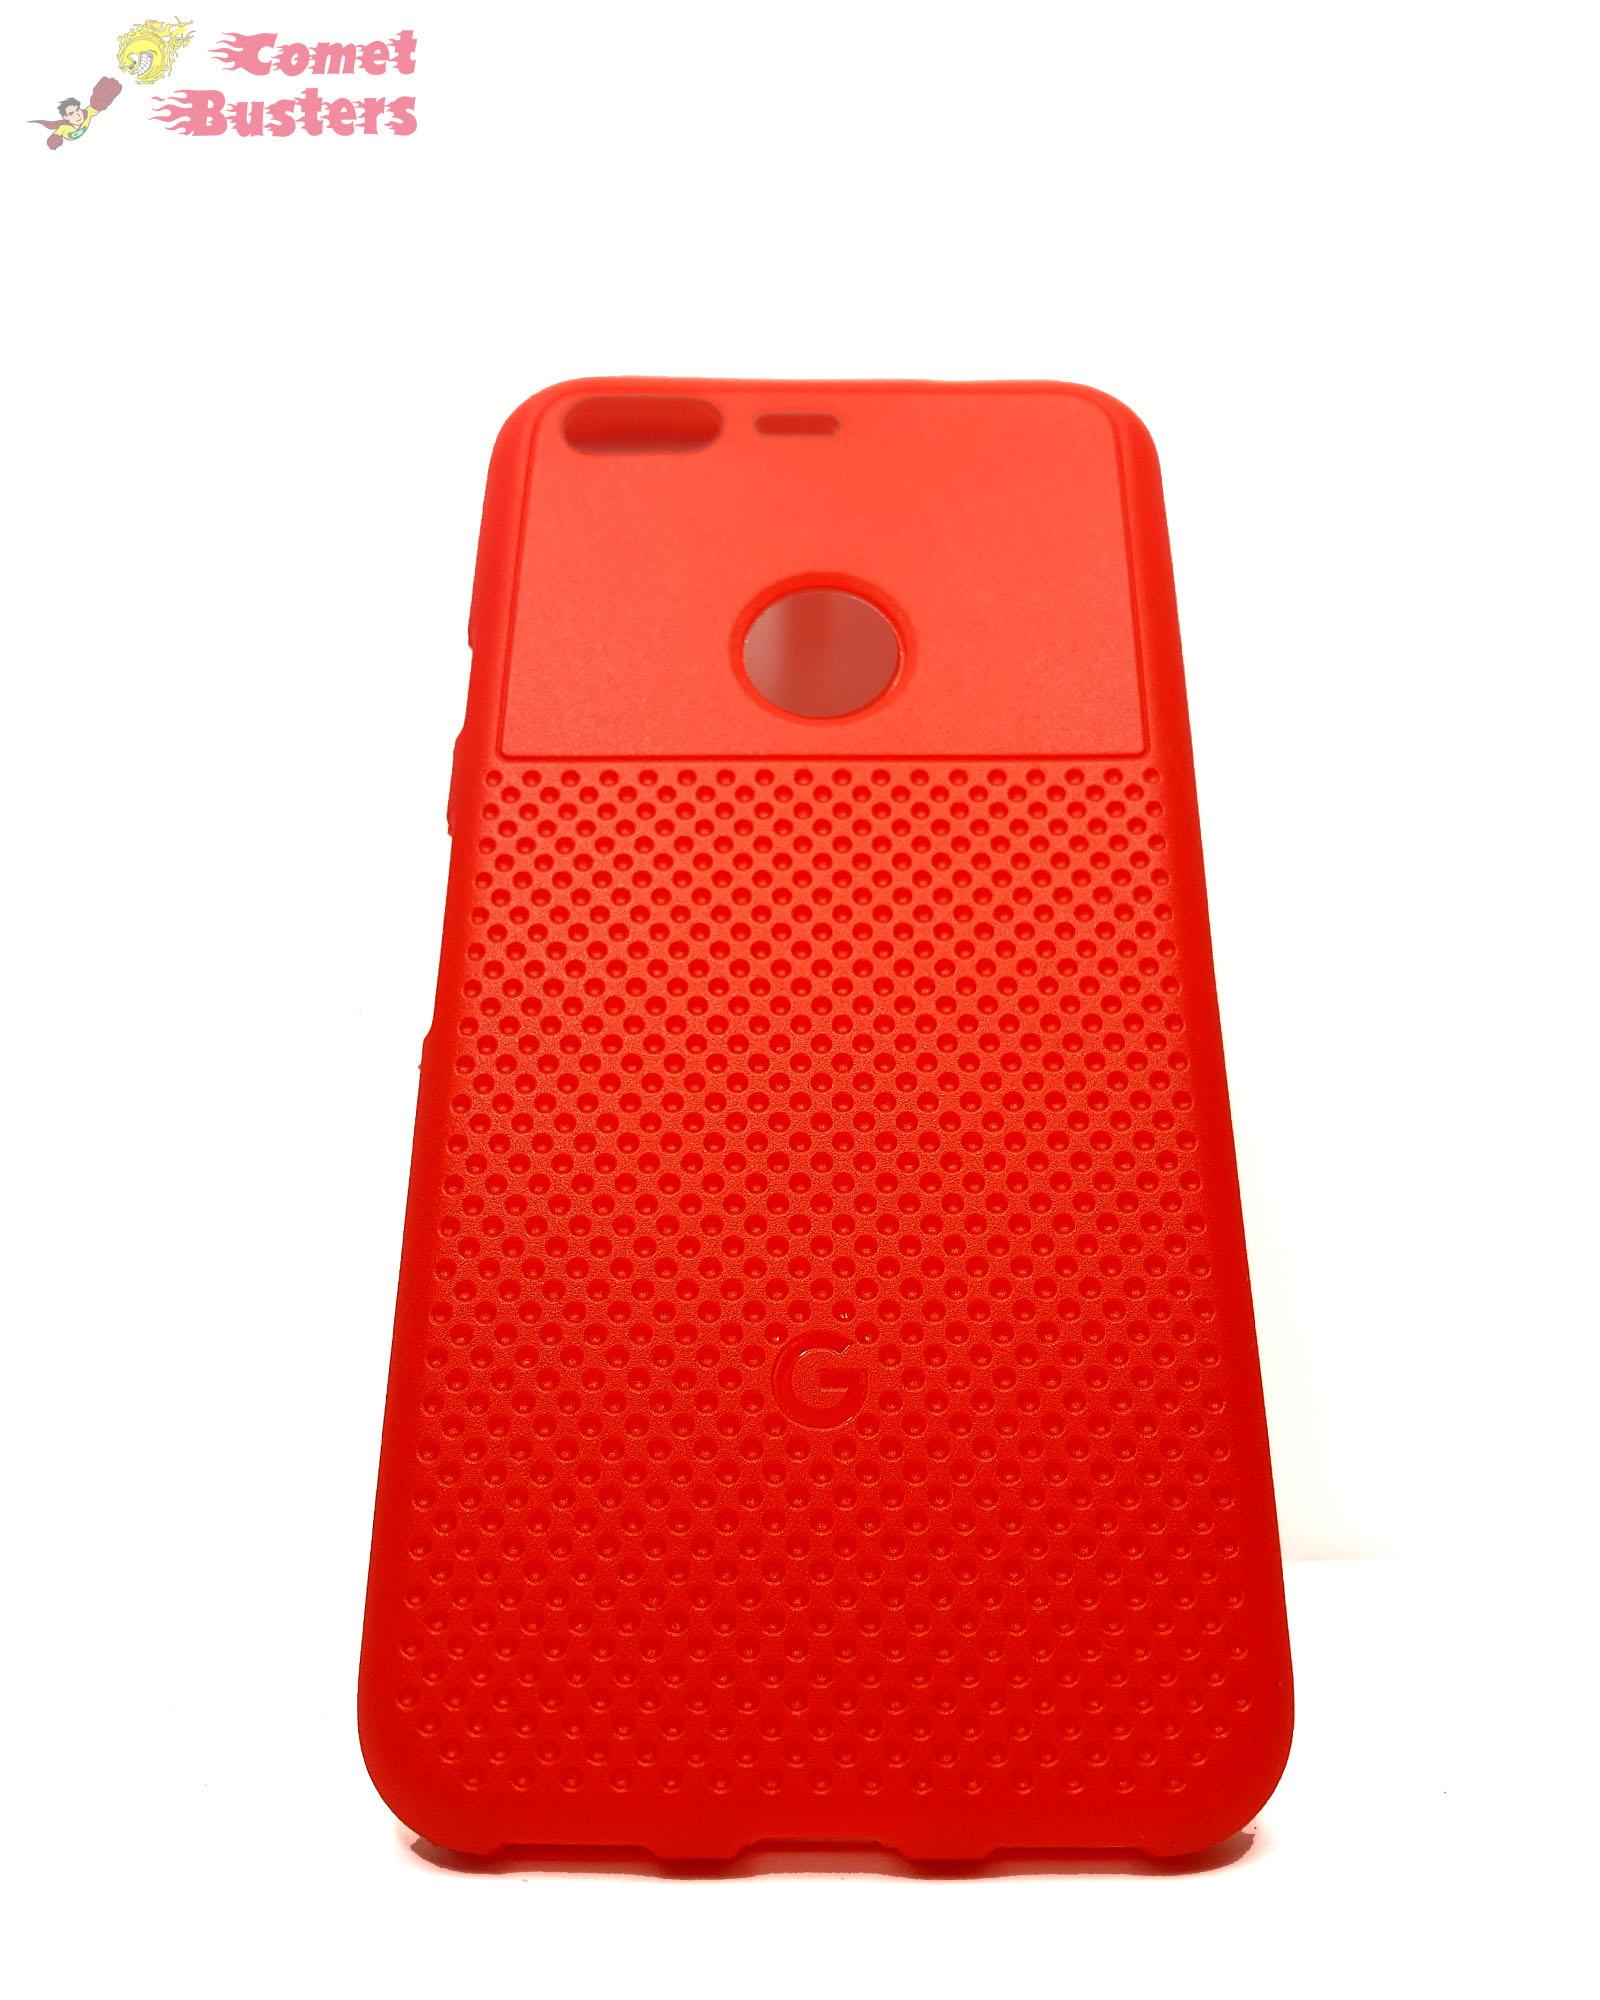 Google Pixel Soft Back Cover Case Red